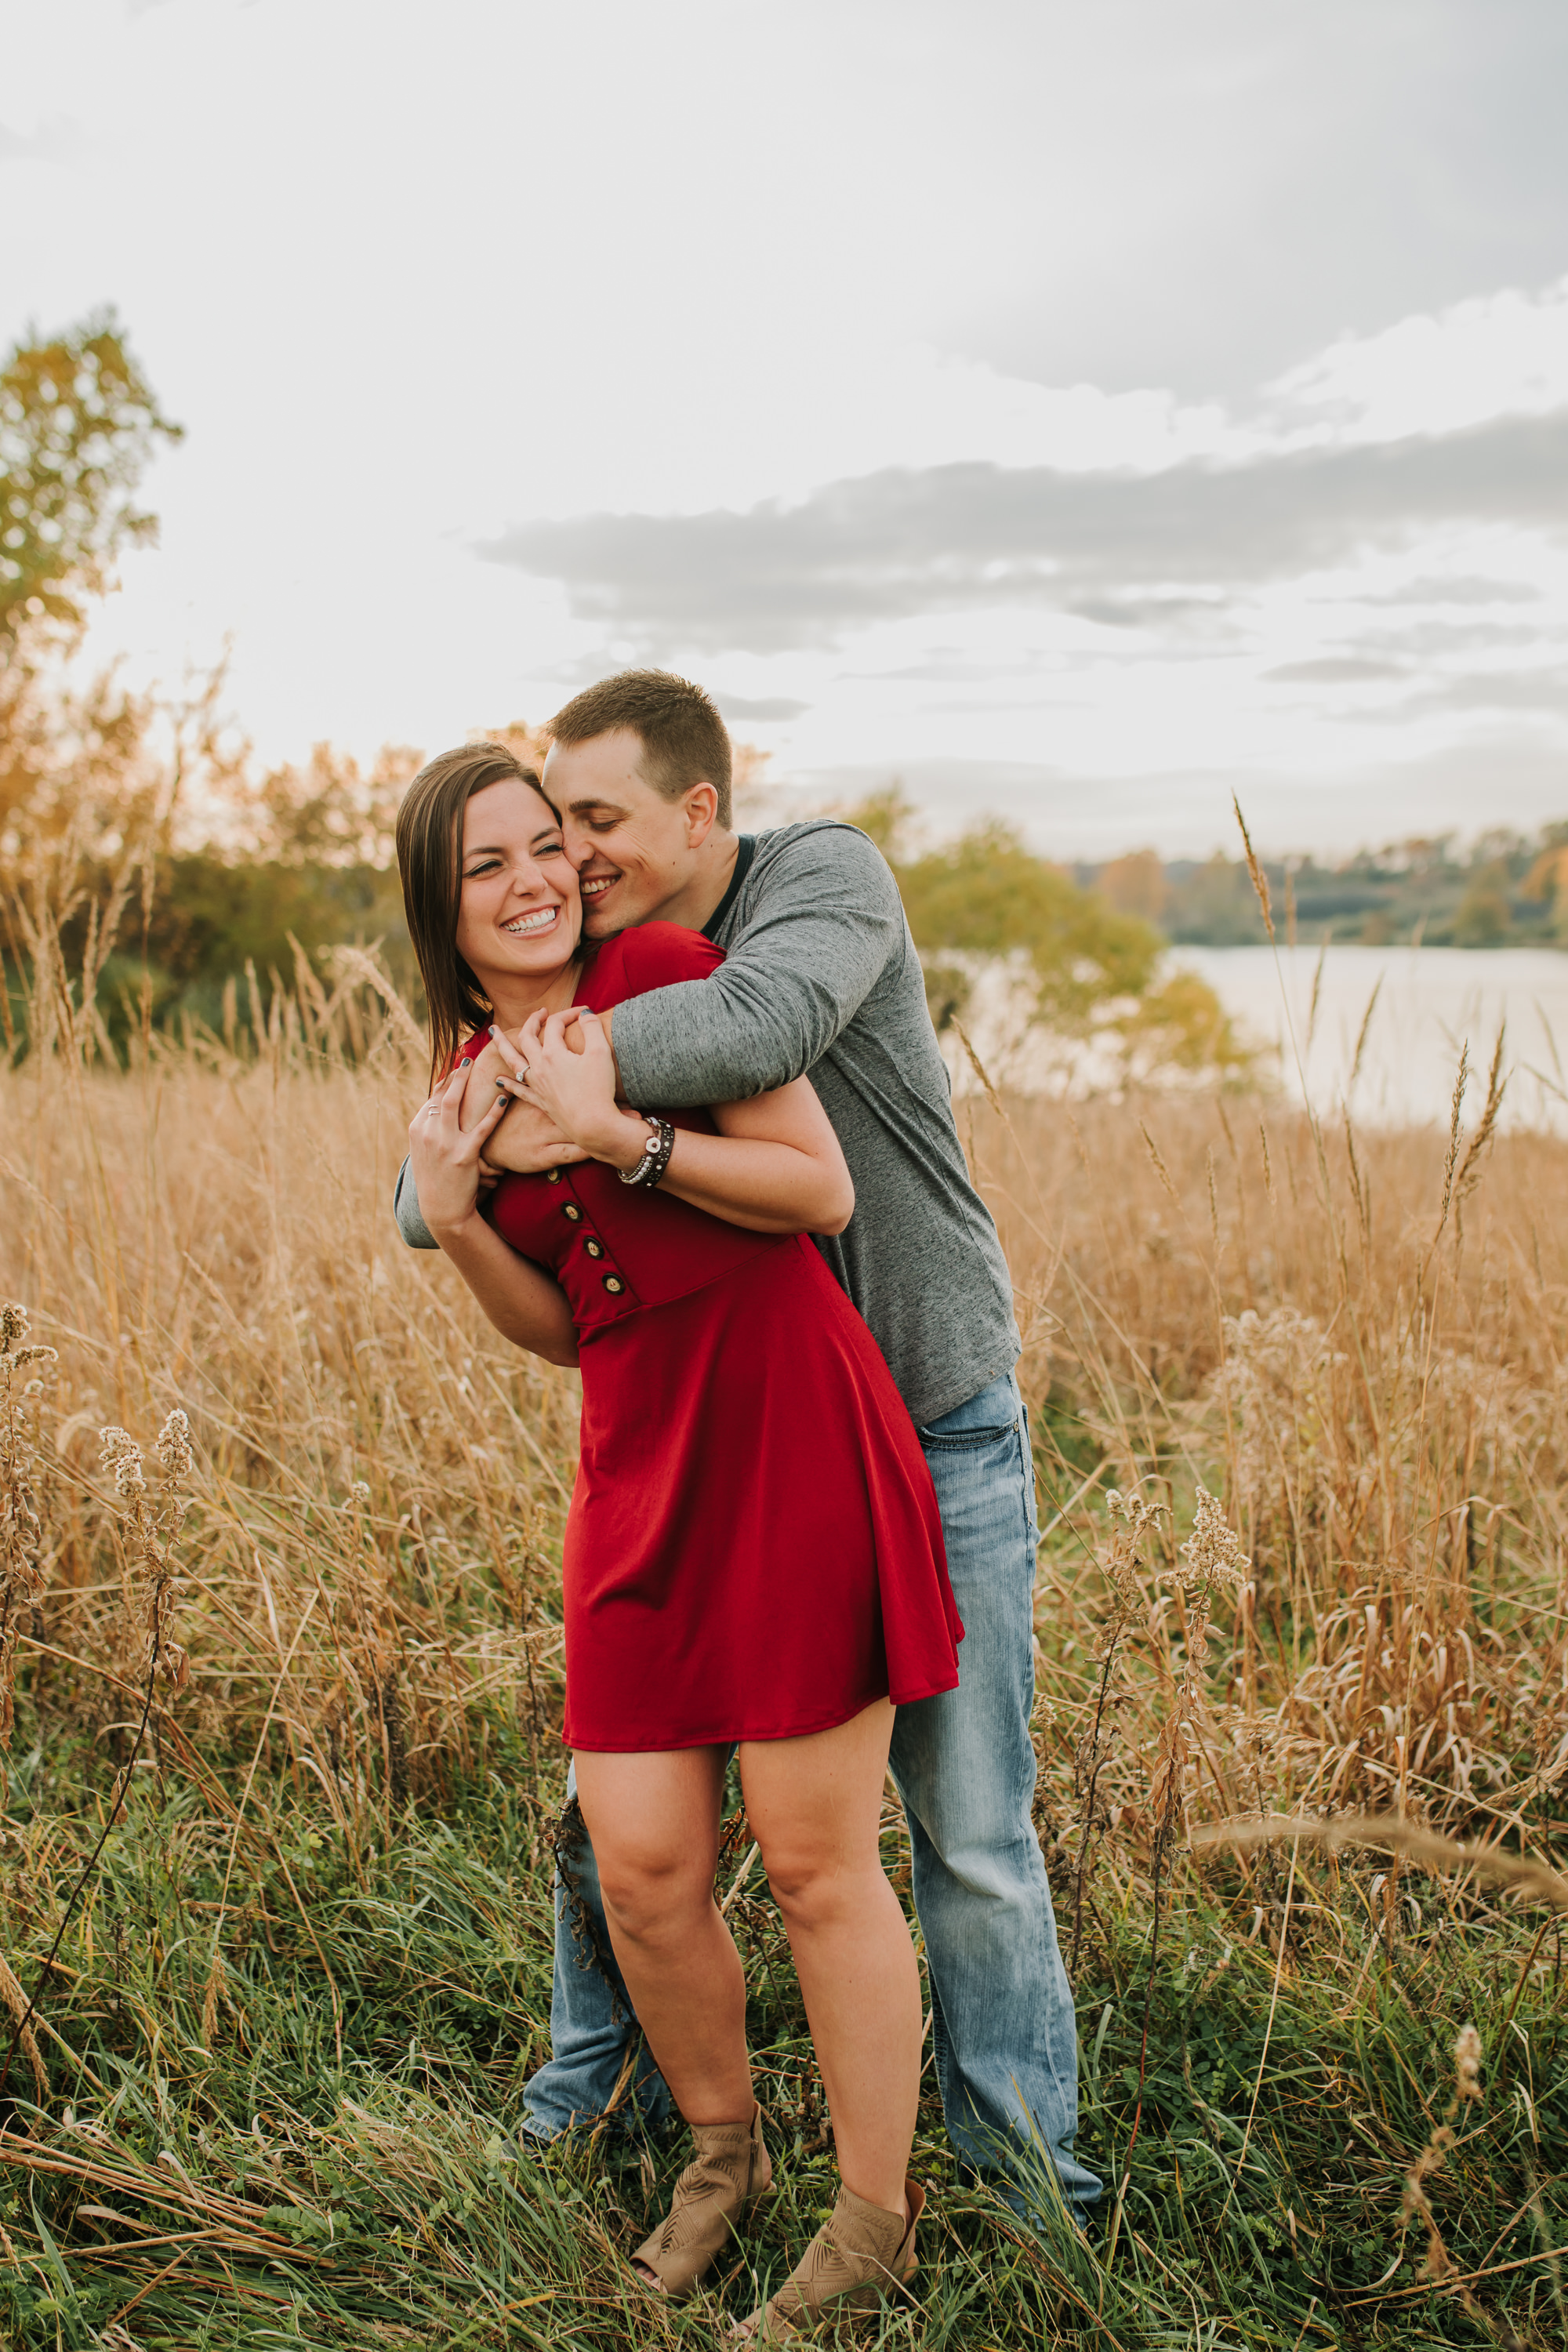 Hannah & Brett - Engaged - Nathaniel Jensen Photography - Omaha Nebraska Wedding Photograper - Omaha Nebraska Engagement Session - Chalco Hills Engagement Session-98.jpg